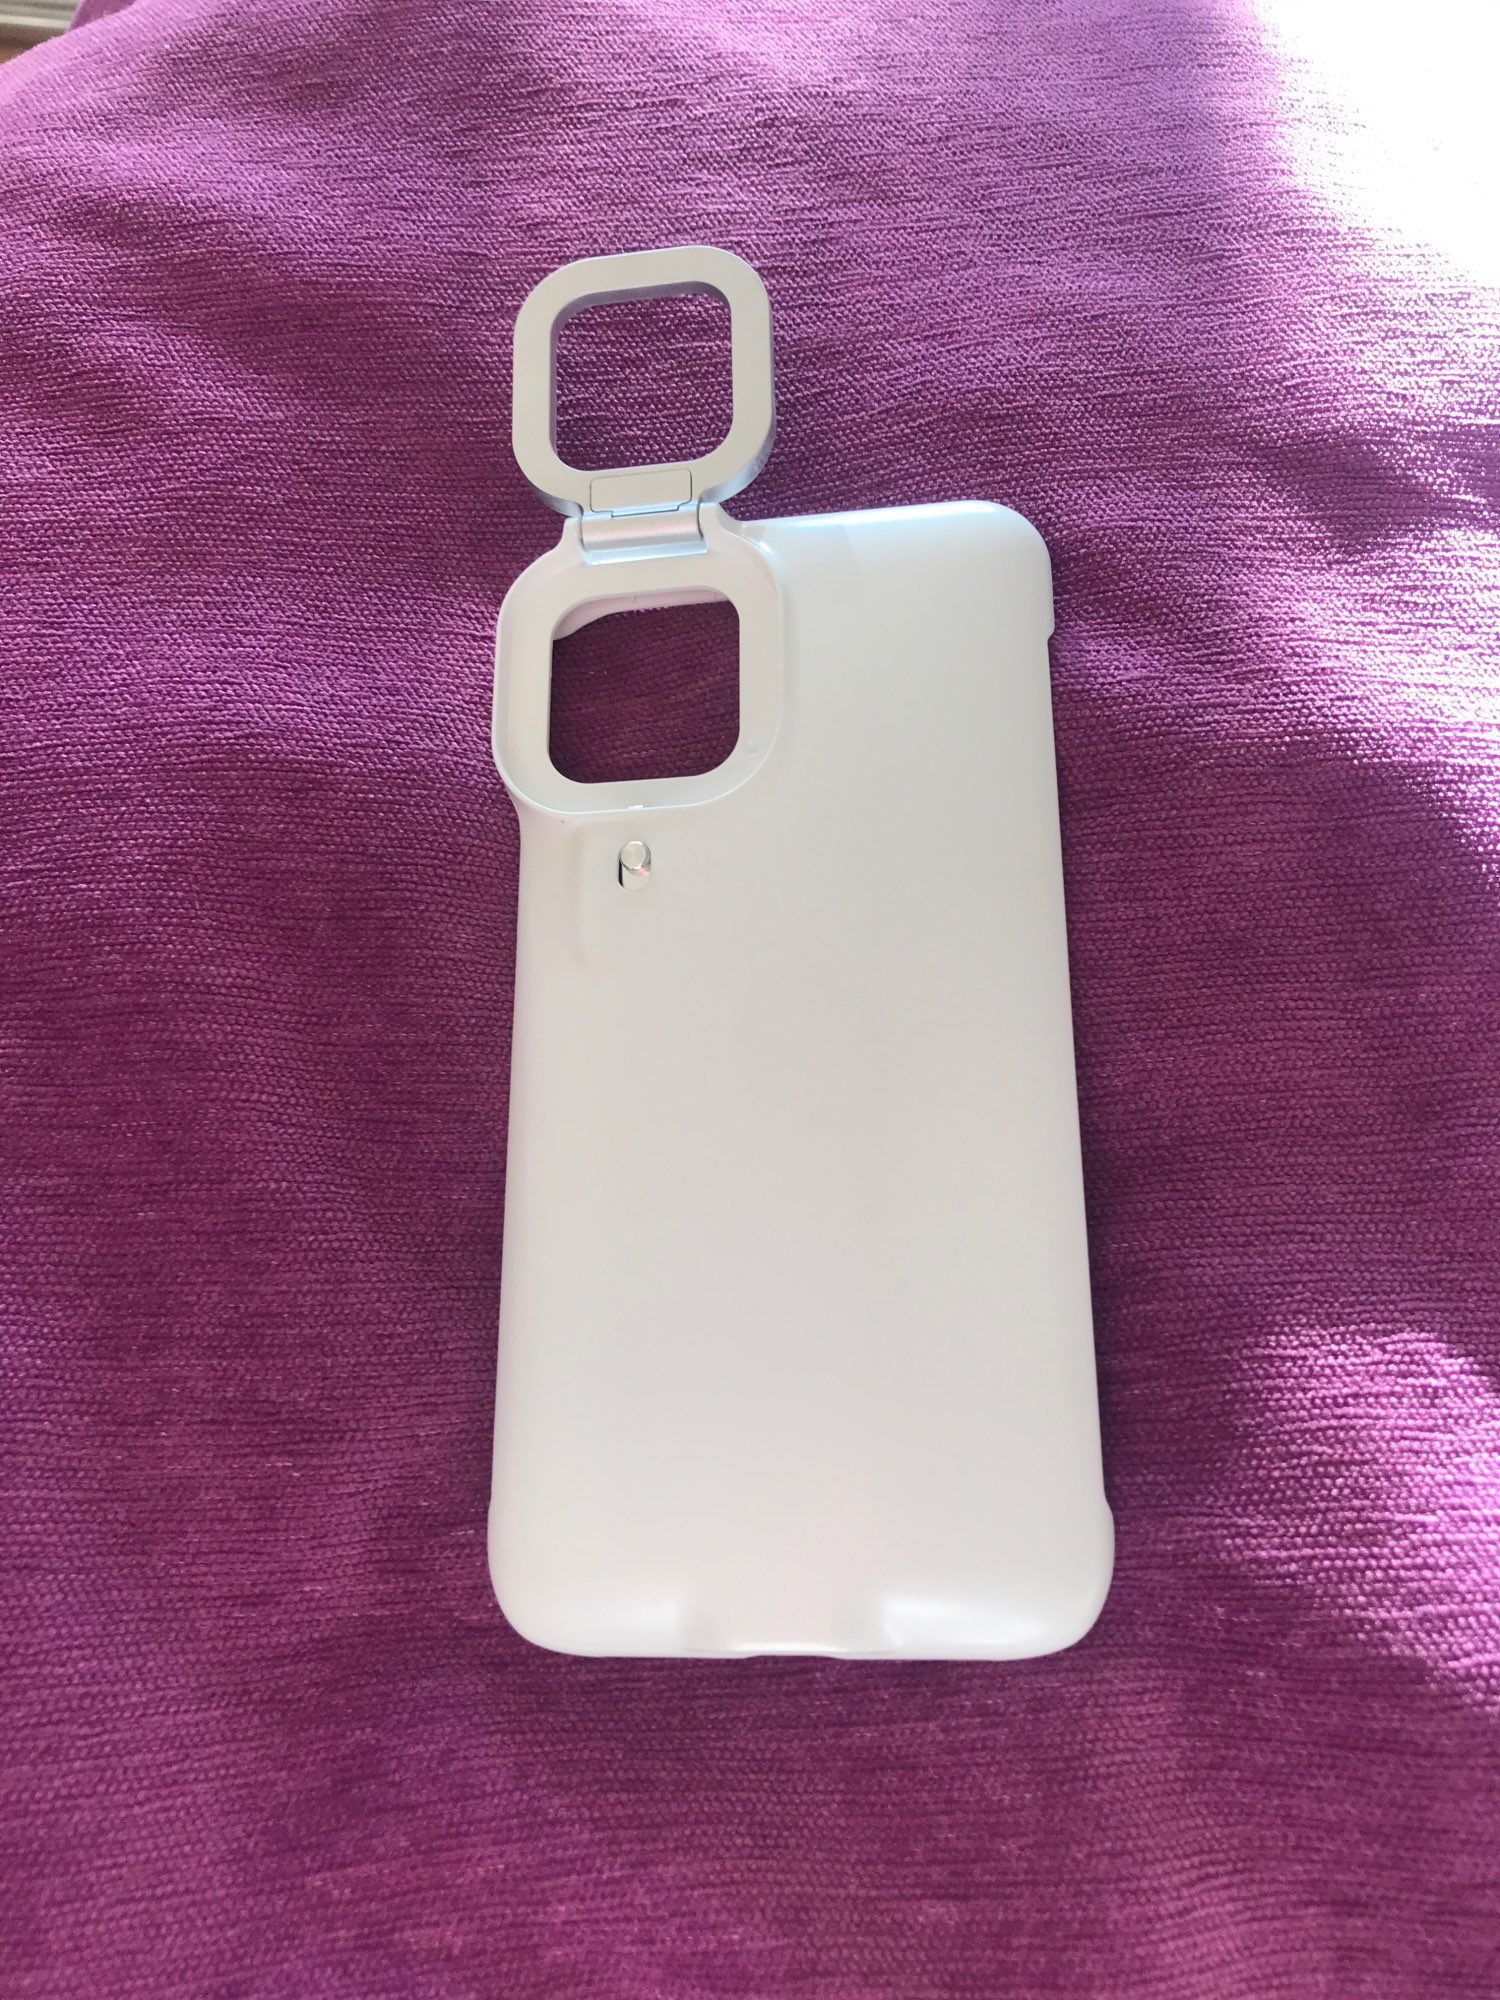 iPhone Selfie Case with Square Ringlight photo review